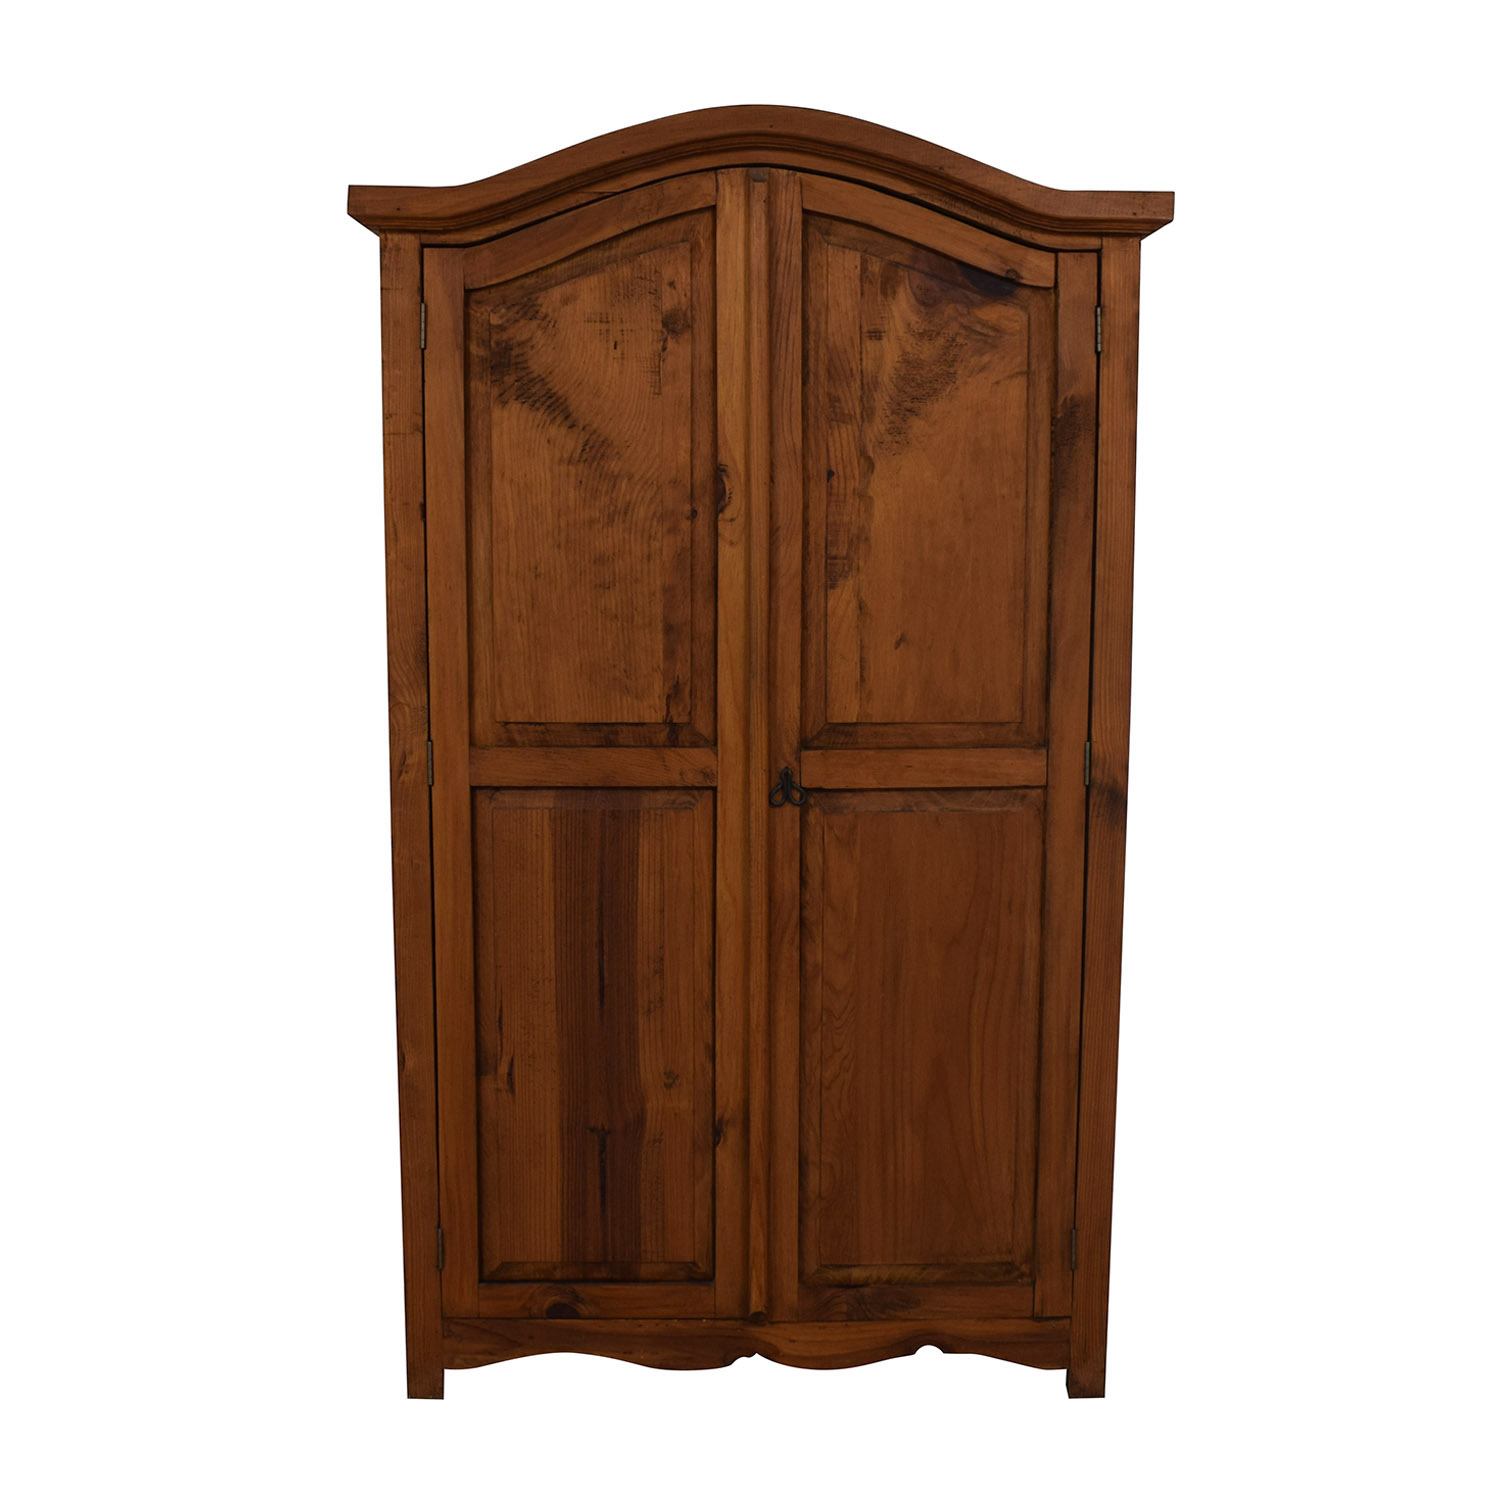 Dovetailed Wood Wardrobe Armoire second hand